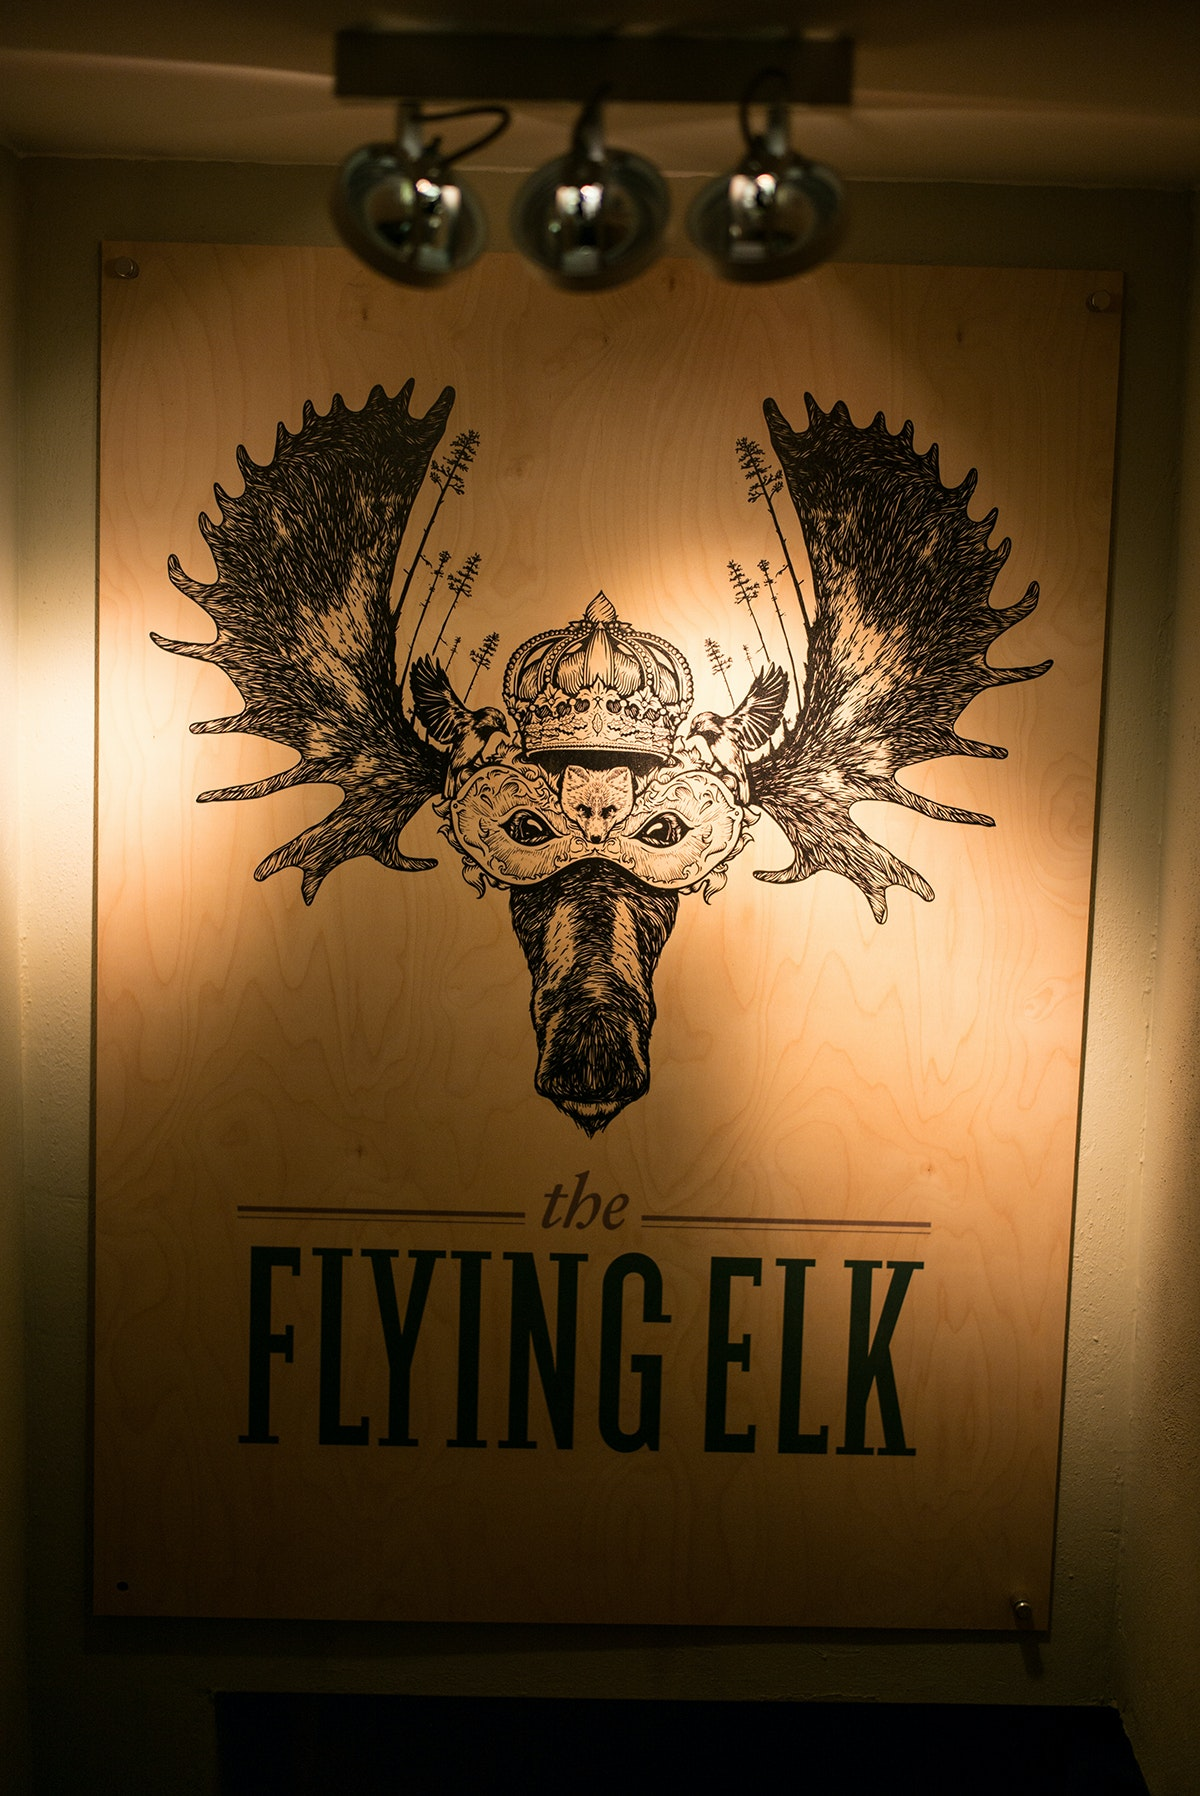 The Flying Elk